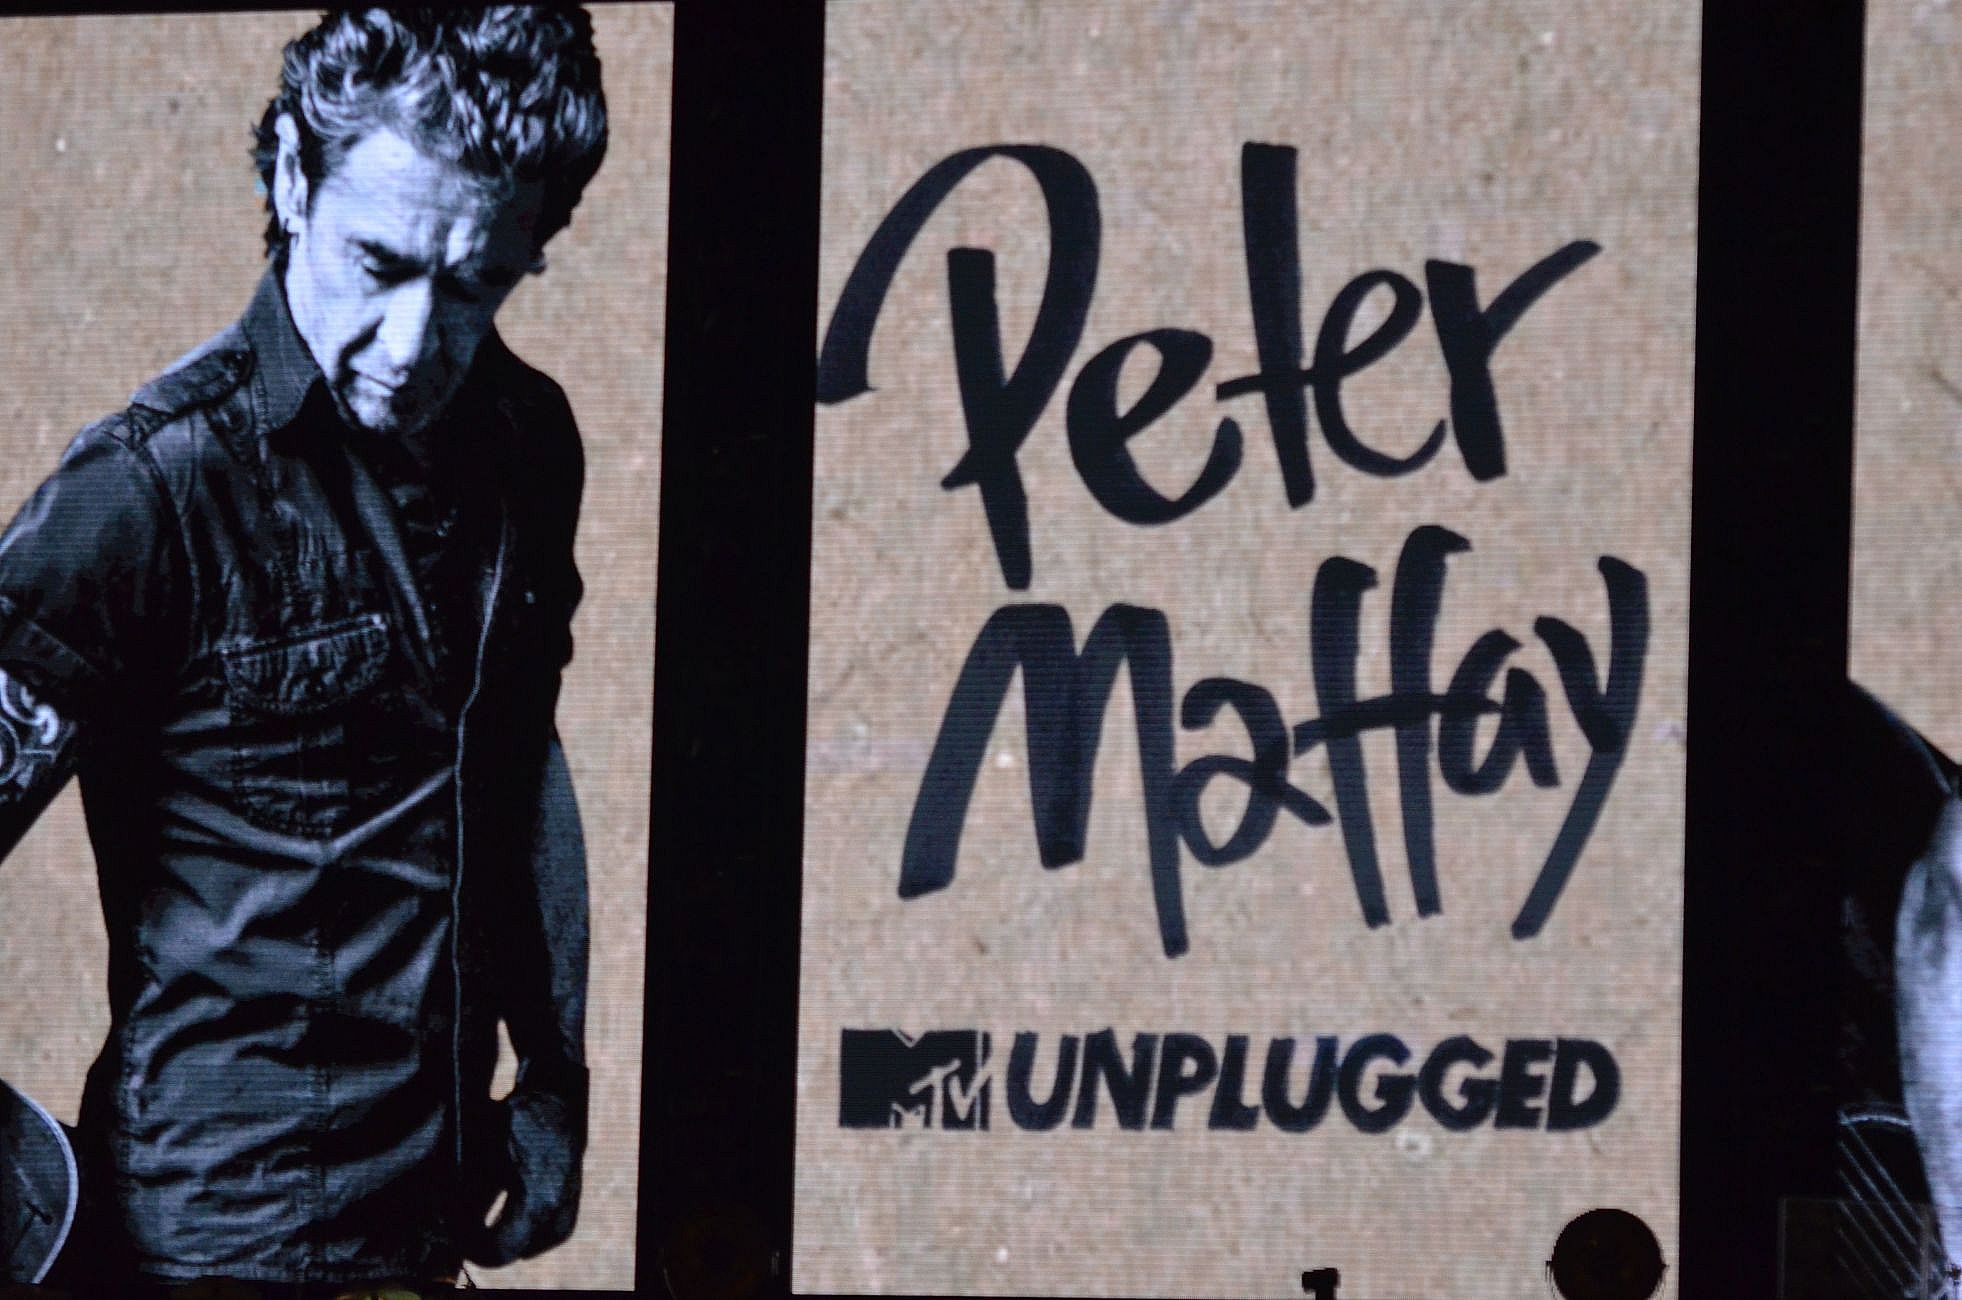 Peter Maffay MTV-unplugged in Bremen,Fotos von MiO Made in Oldenburg & miofoto